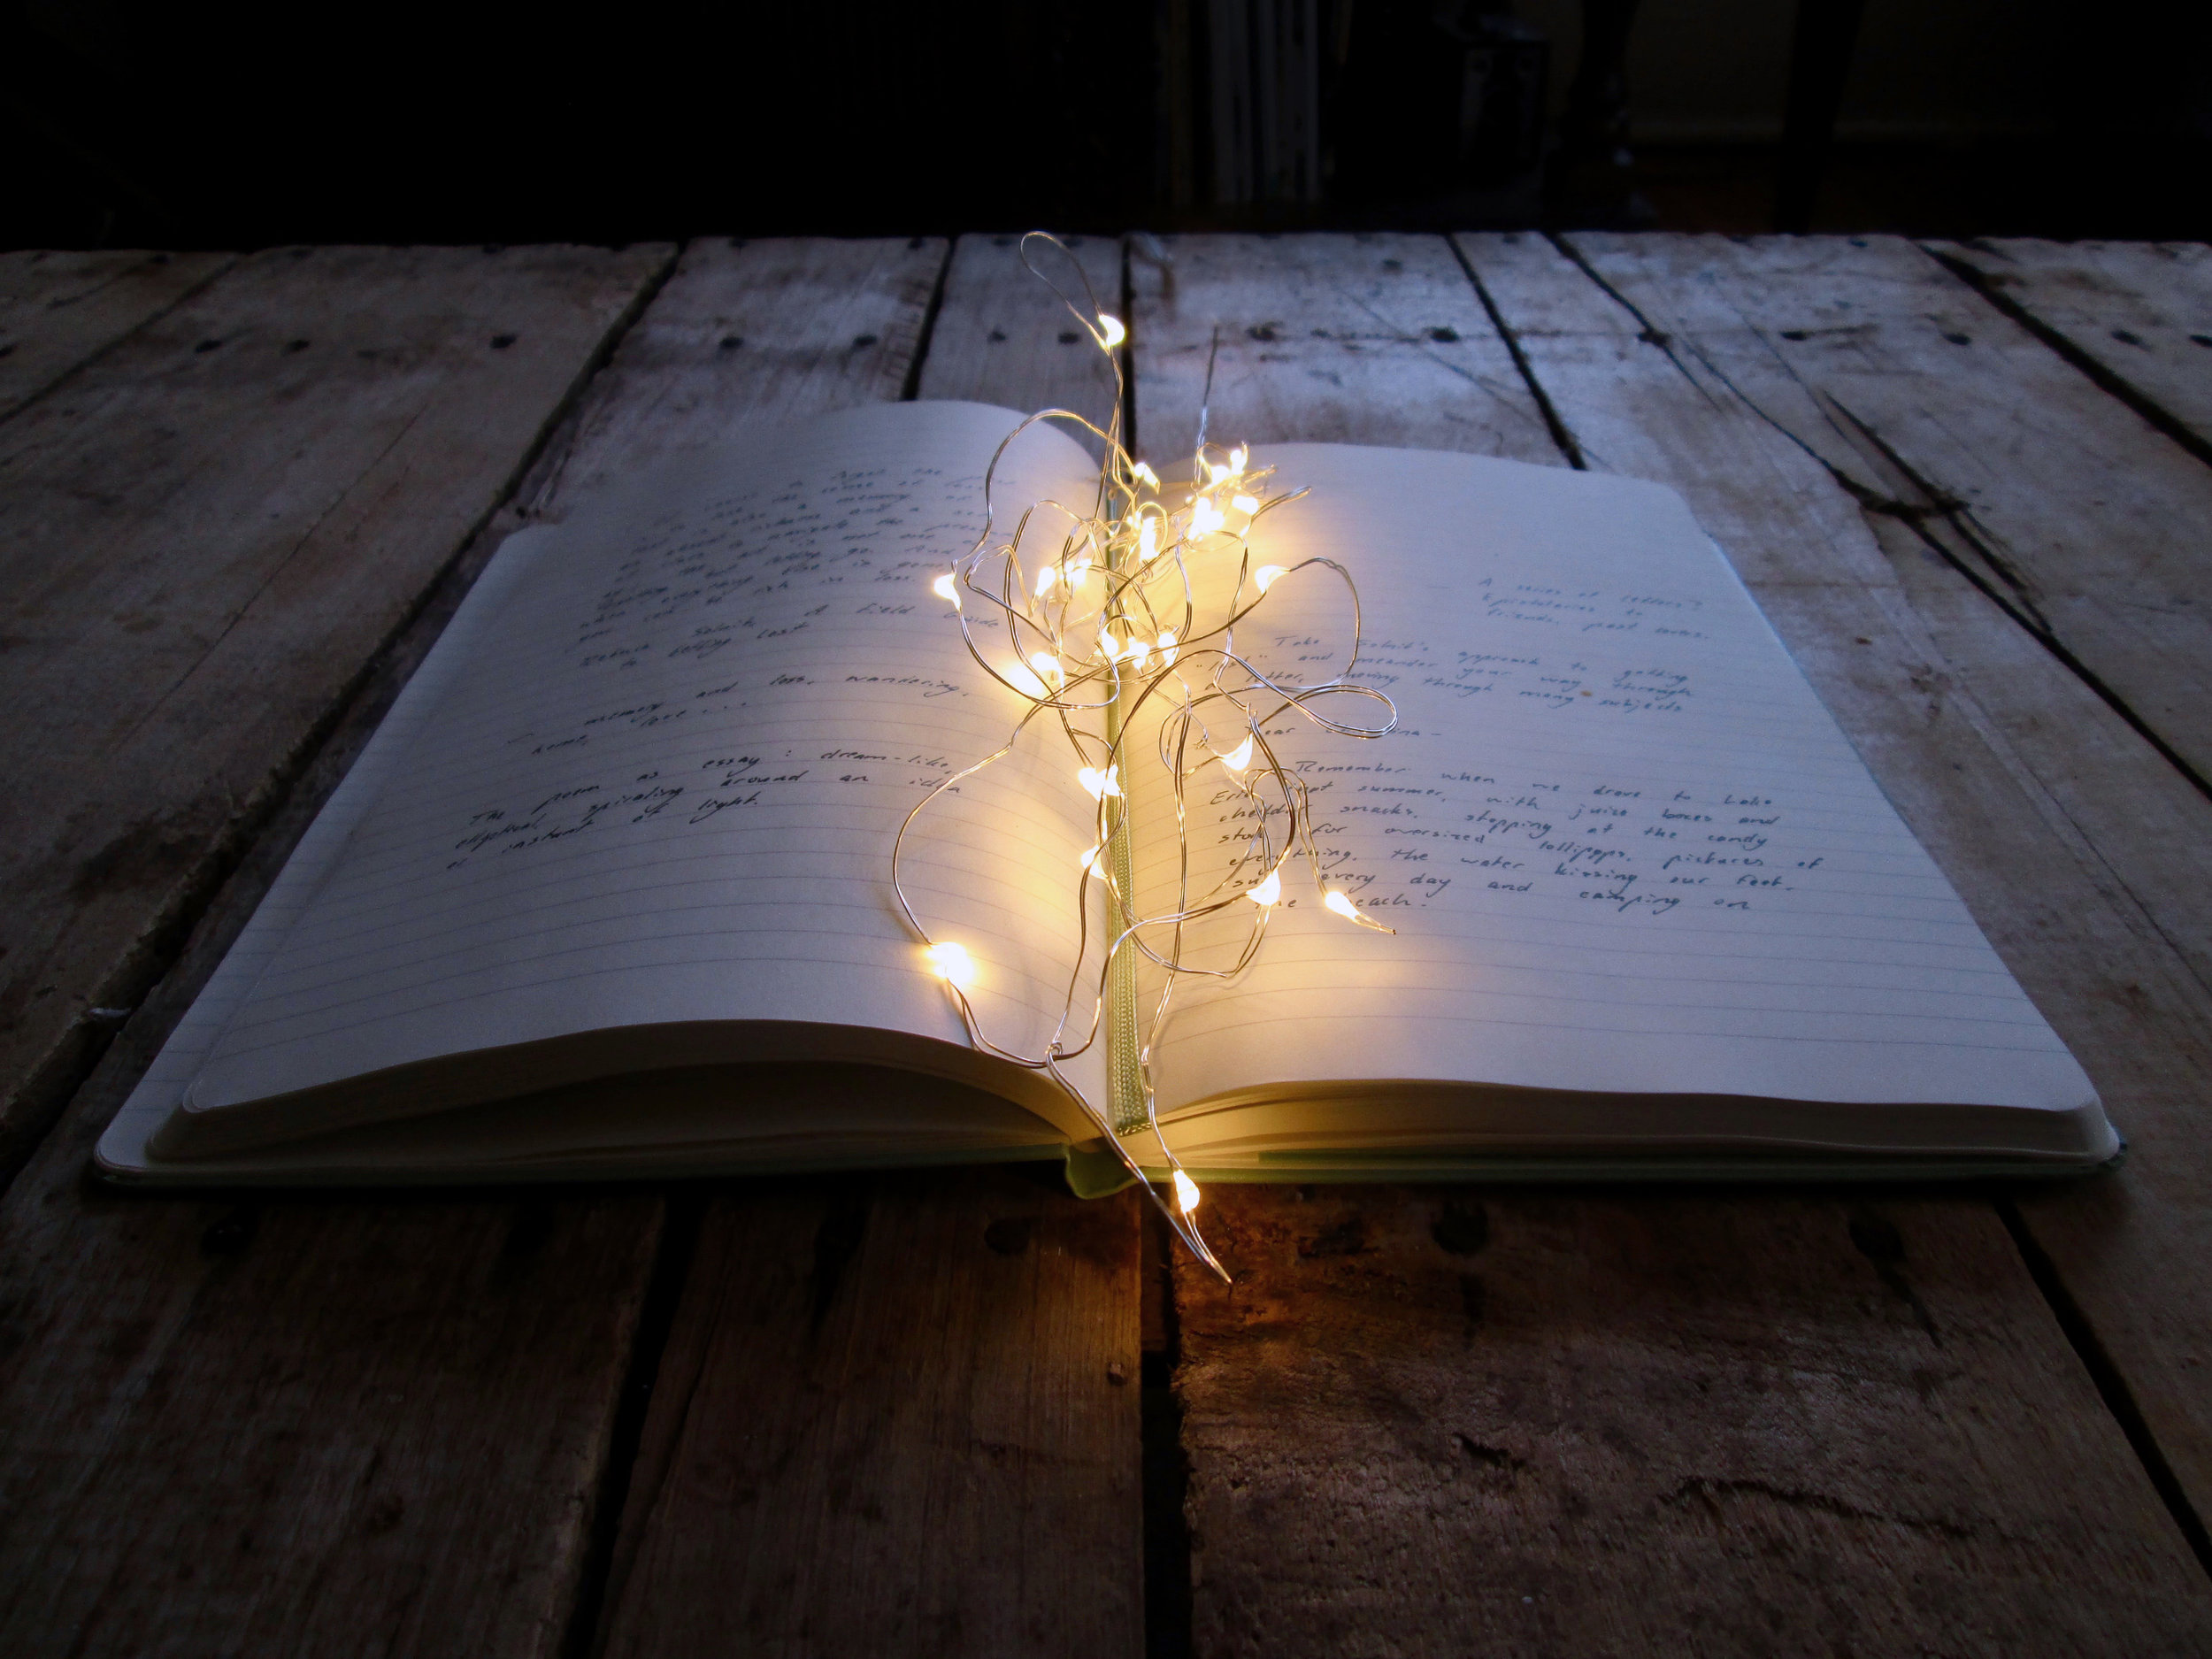 notebook w light-edited credit Jessica Poli.jpg